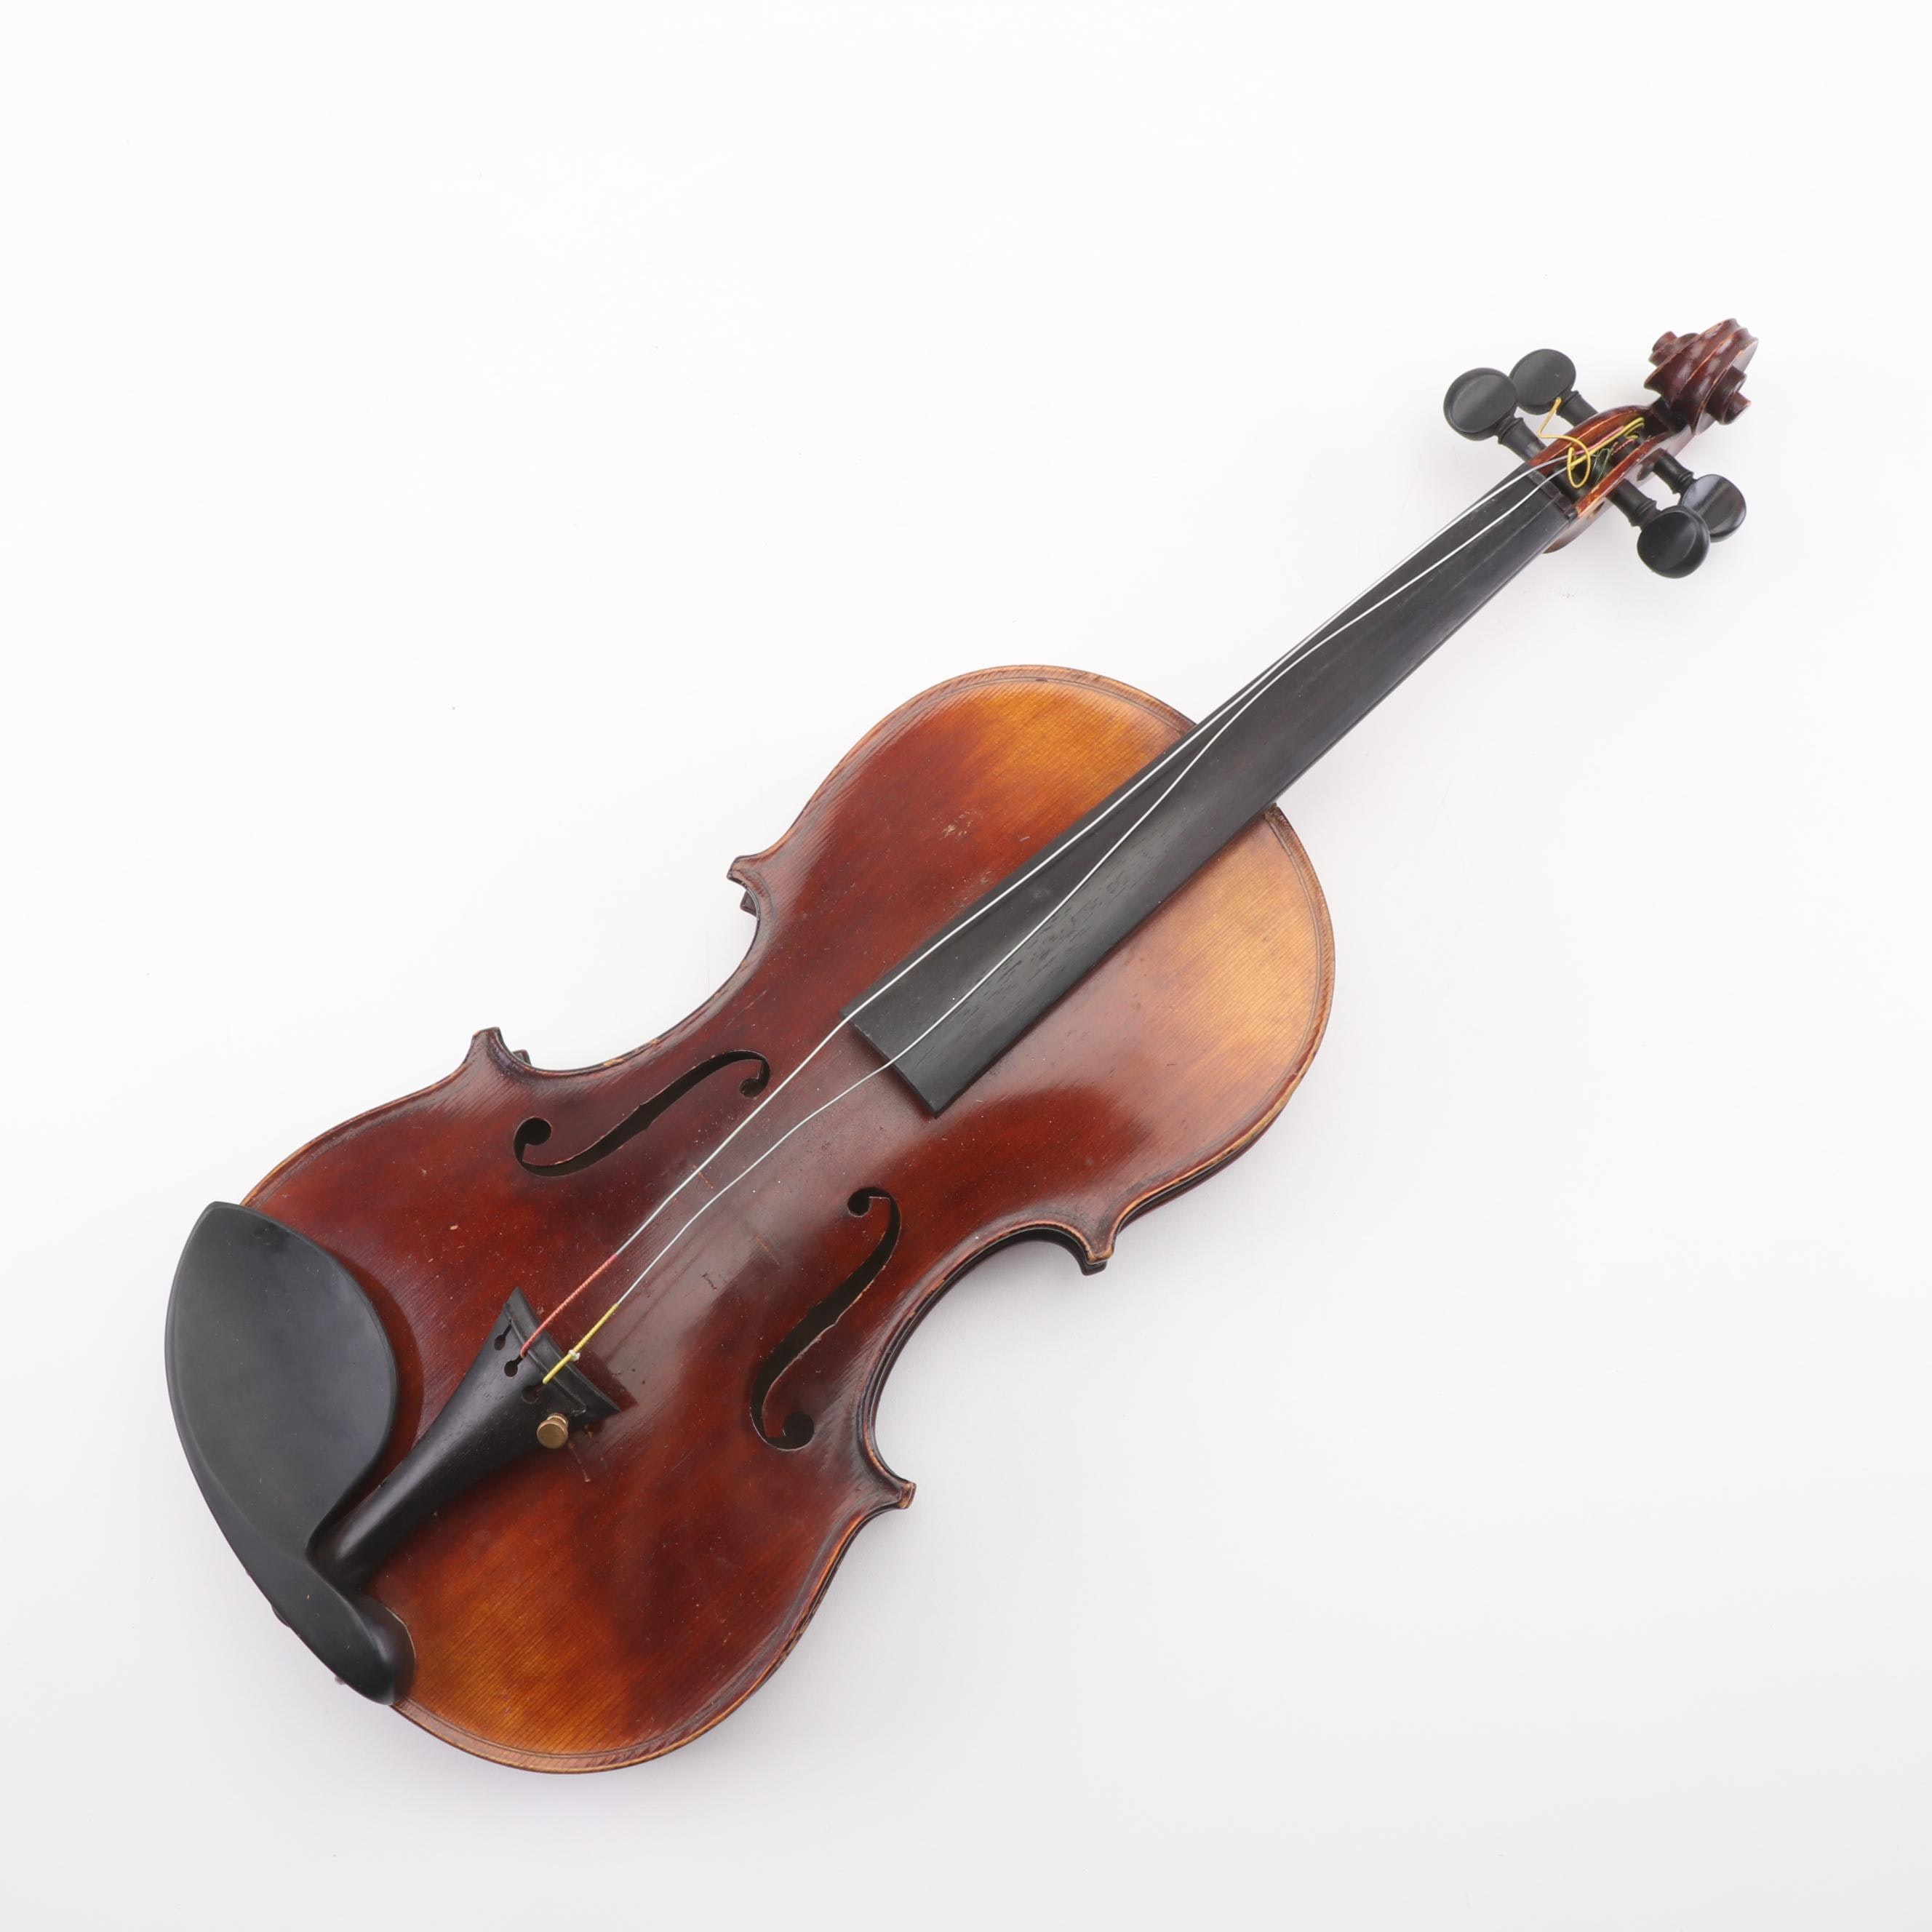 German Carl Neuner Violin, Late 19th/ Early 20th Century